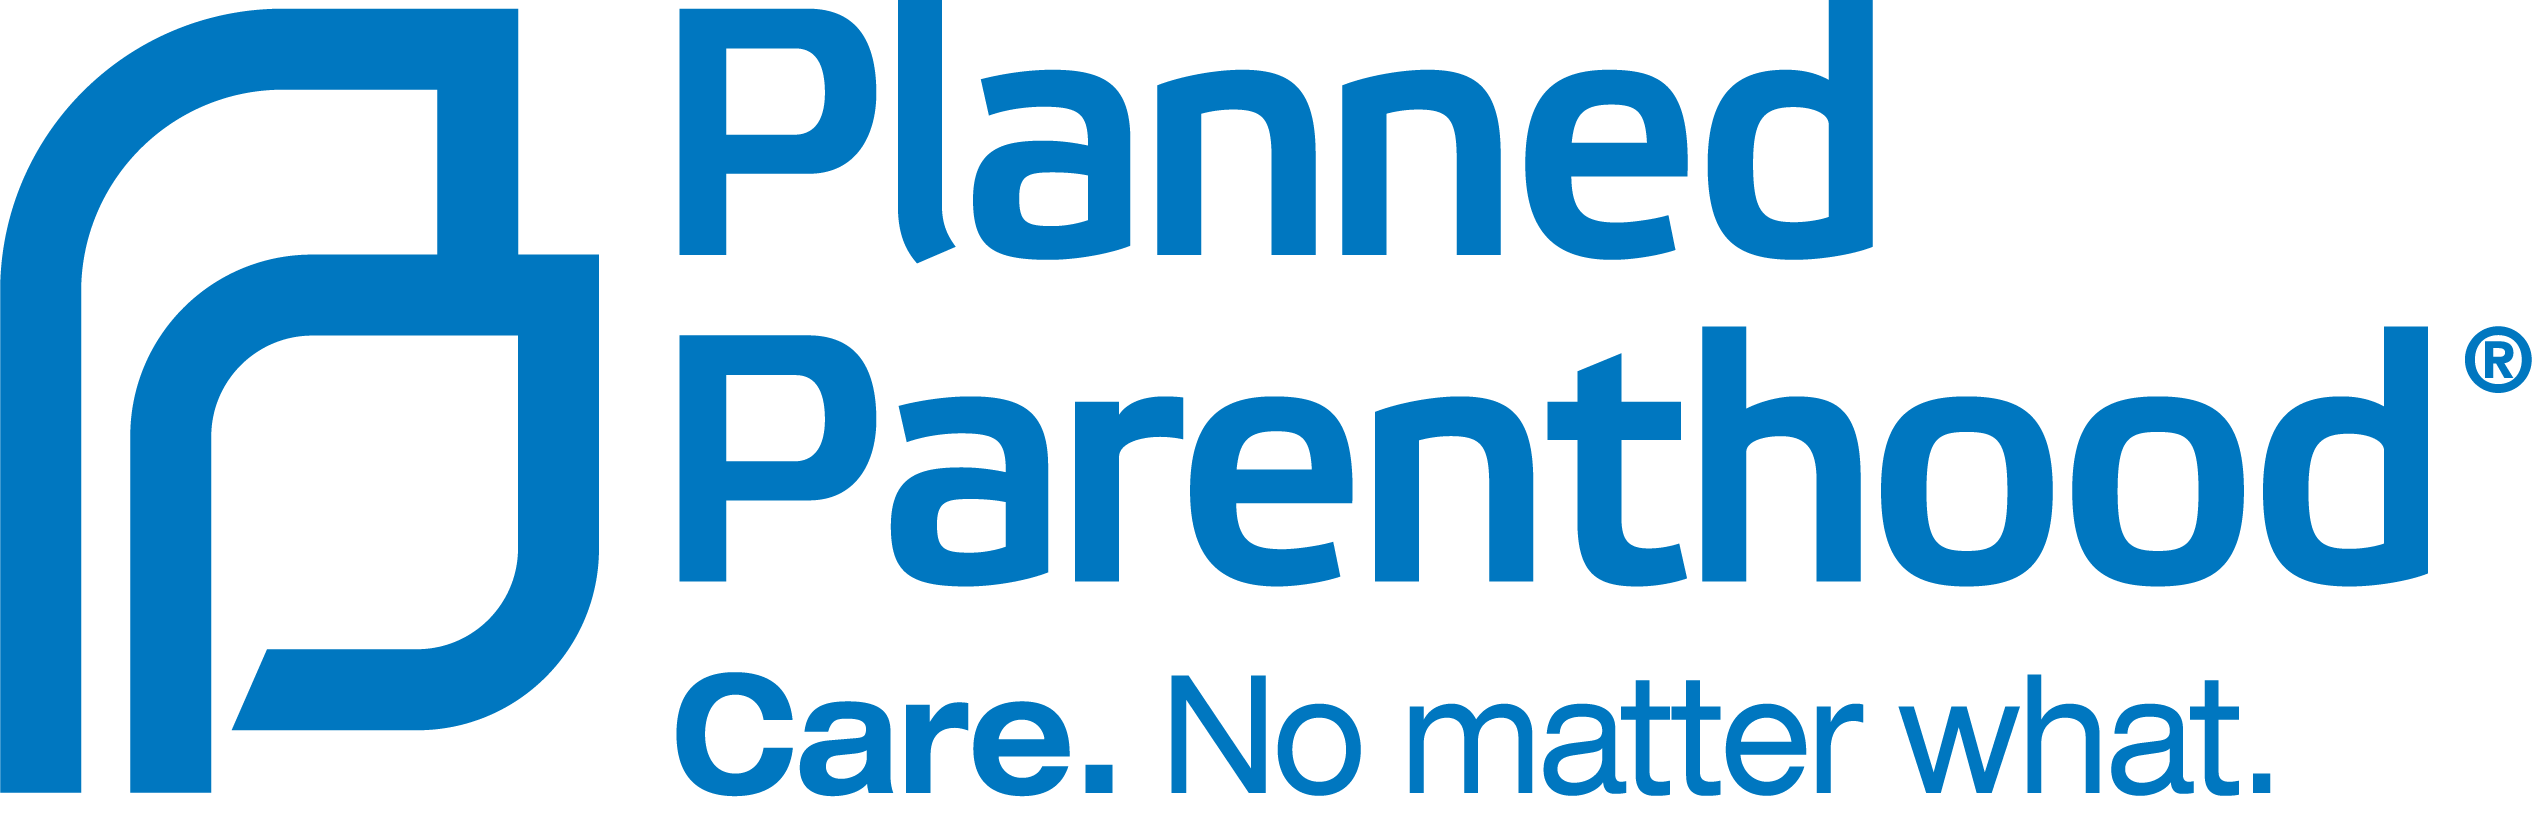 Planned Parenthood Logo.